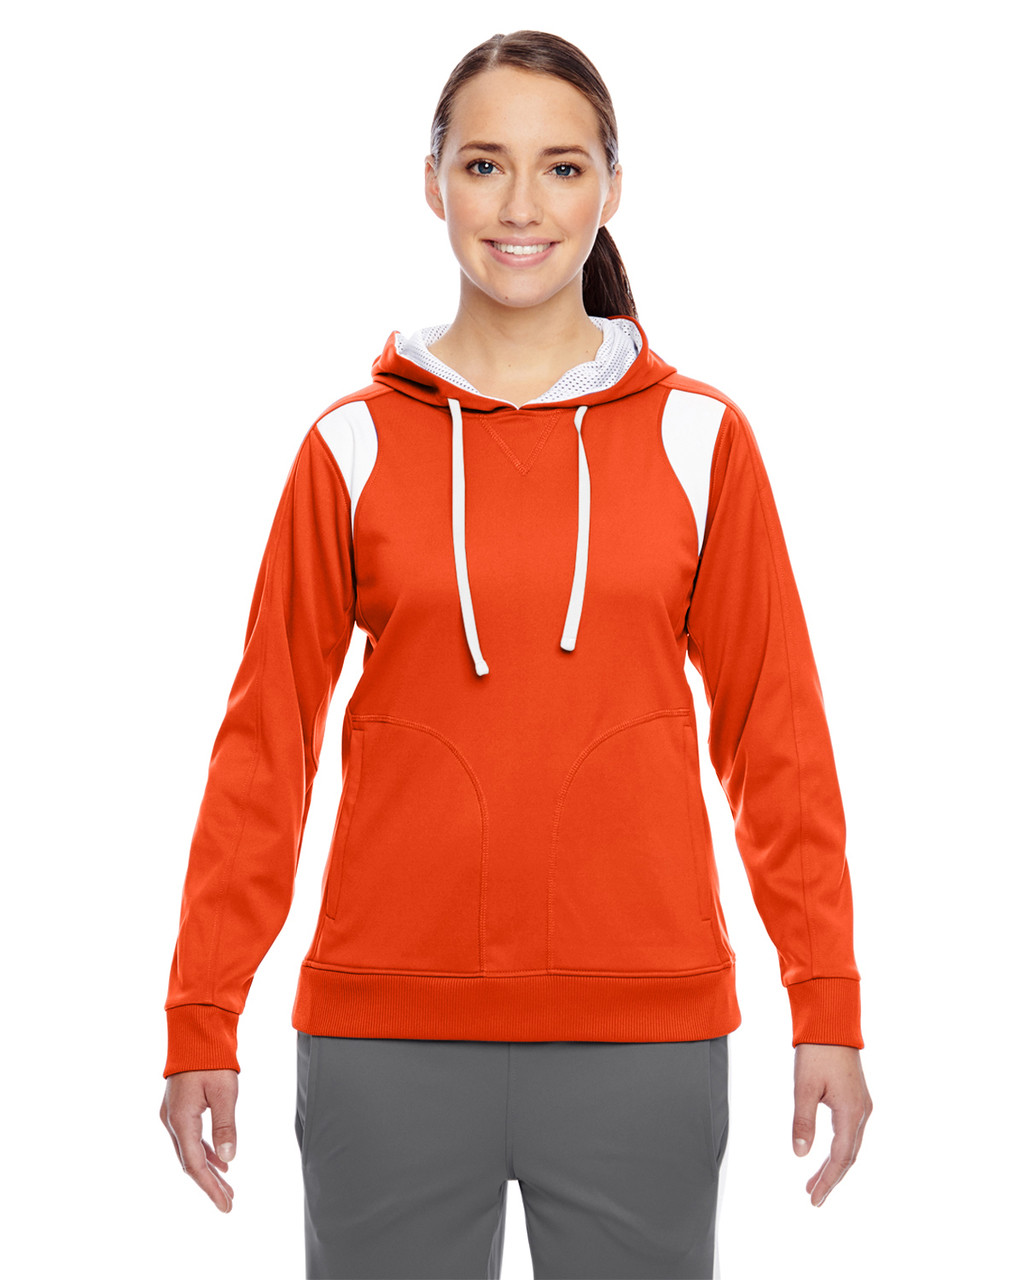 Orange/White - TT30W Team 365 Ladies' Elite Performance Hoodie | Blankclothing.ca